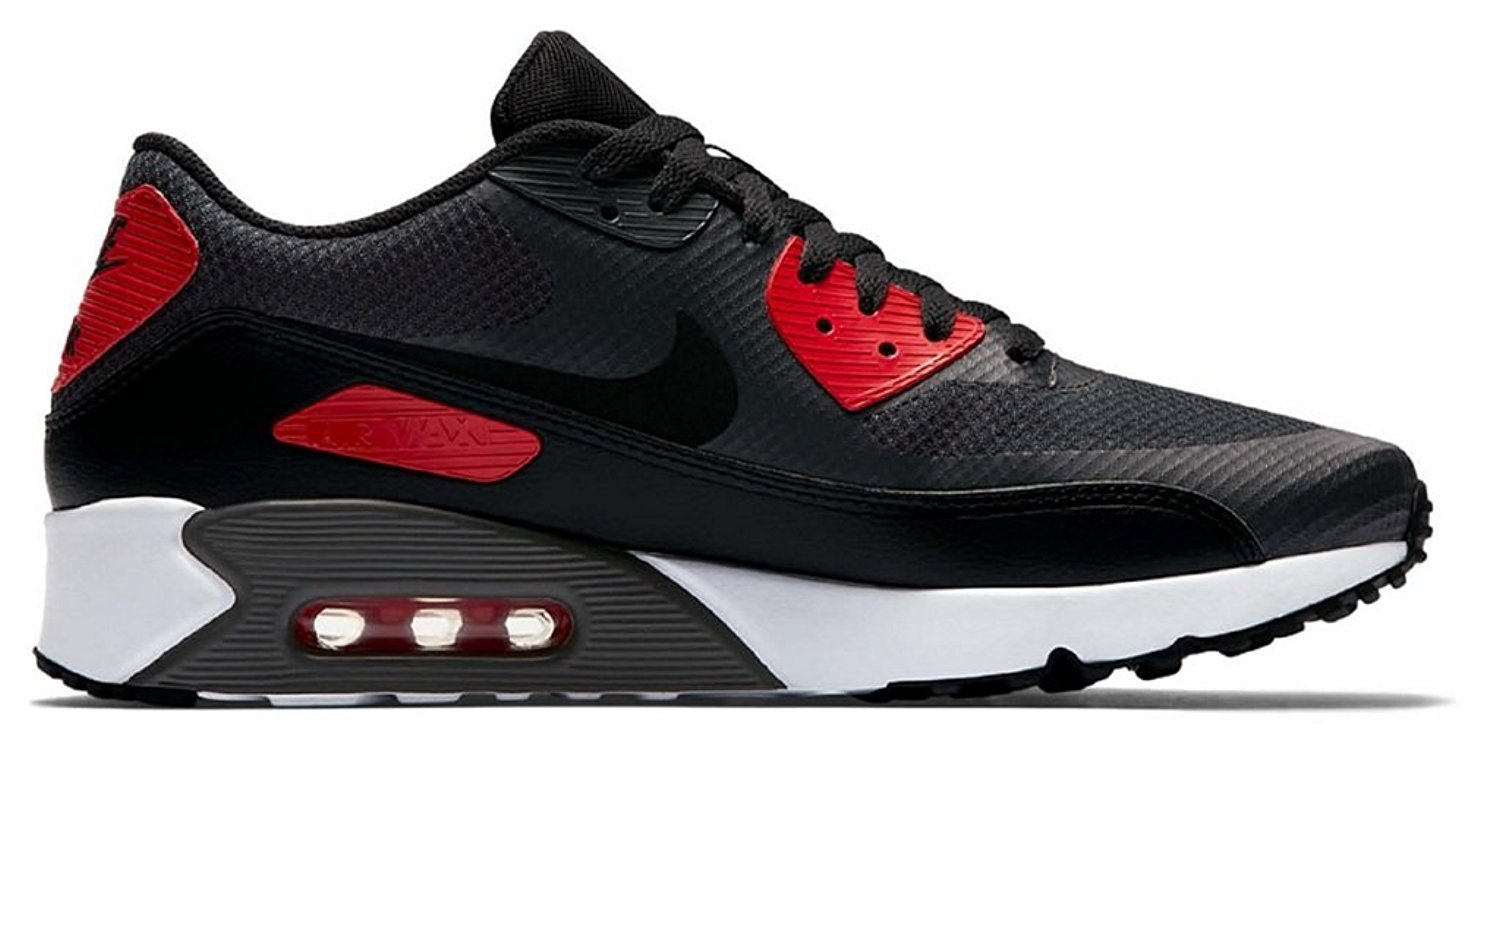 9451ccc54eeb6 NIKE AIR Max 90 Ultra 2.0 Essential Mens Running-Shoes 875695-007_12 -  Anthracite/Black-University RED-White